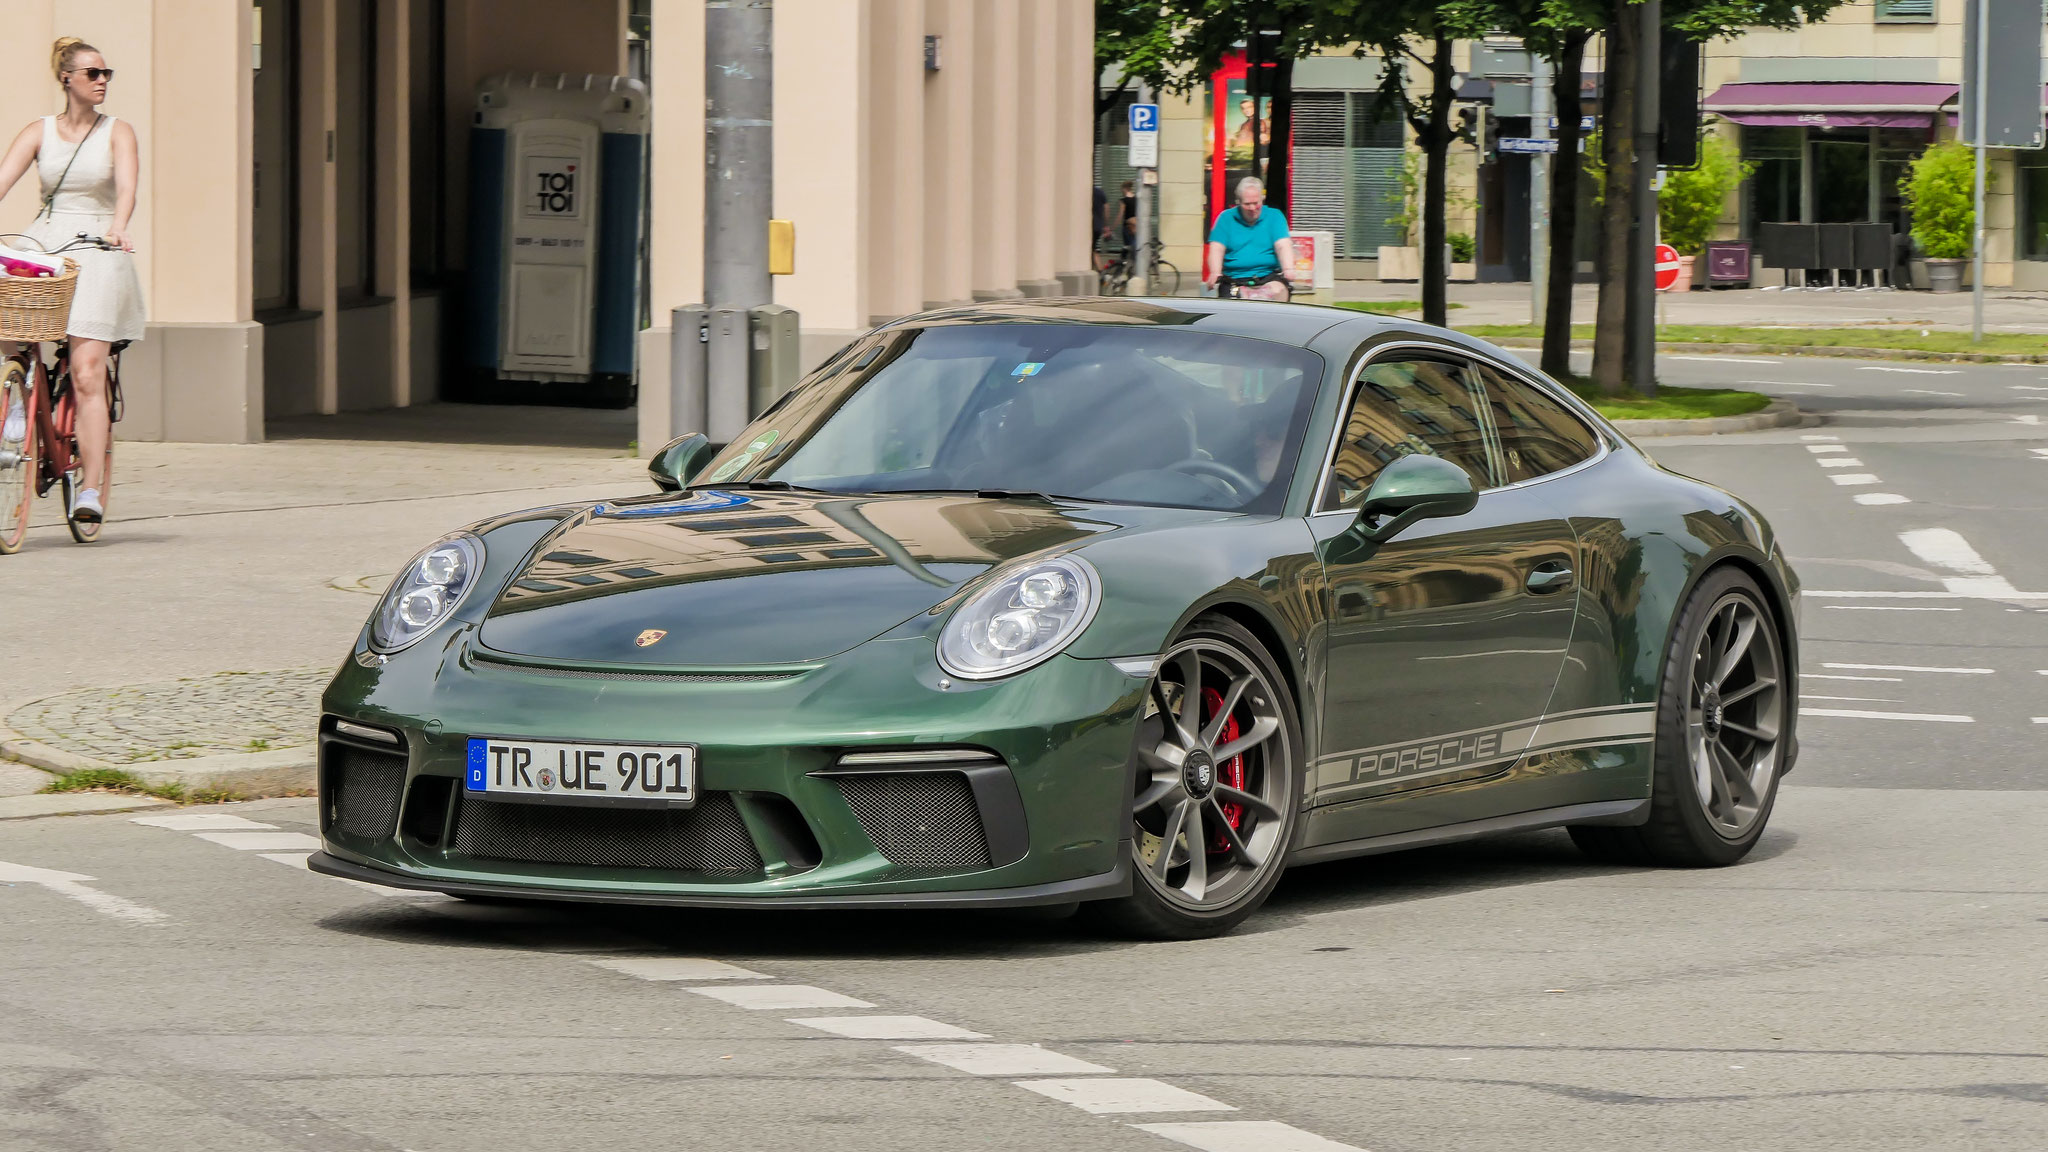 Porsche 991 GT3 Touring Package - TR-UE-901